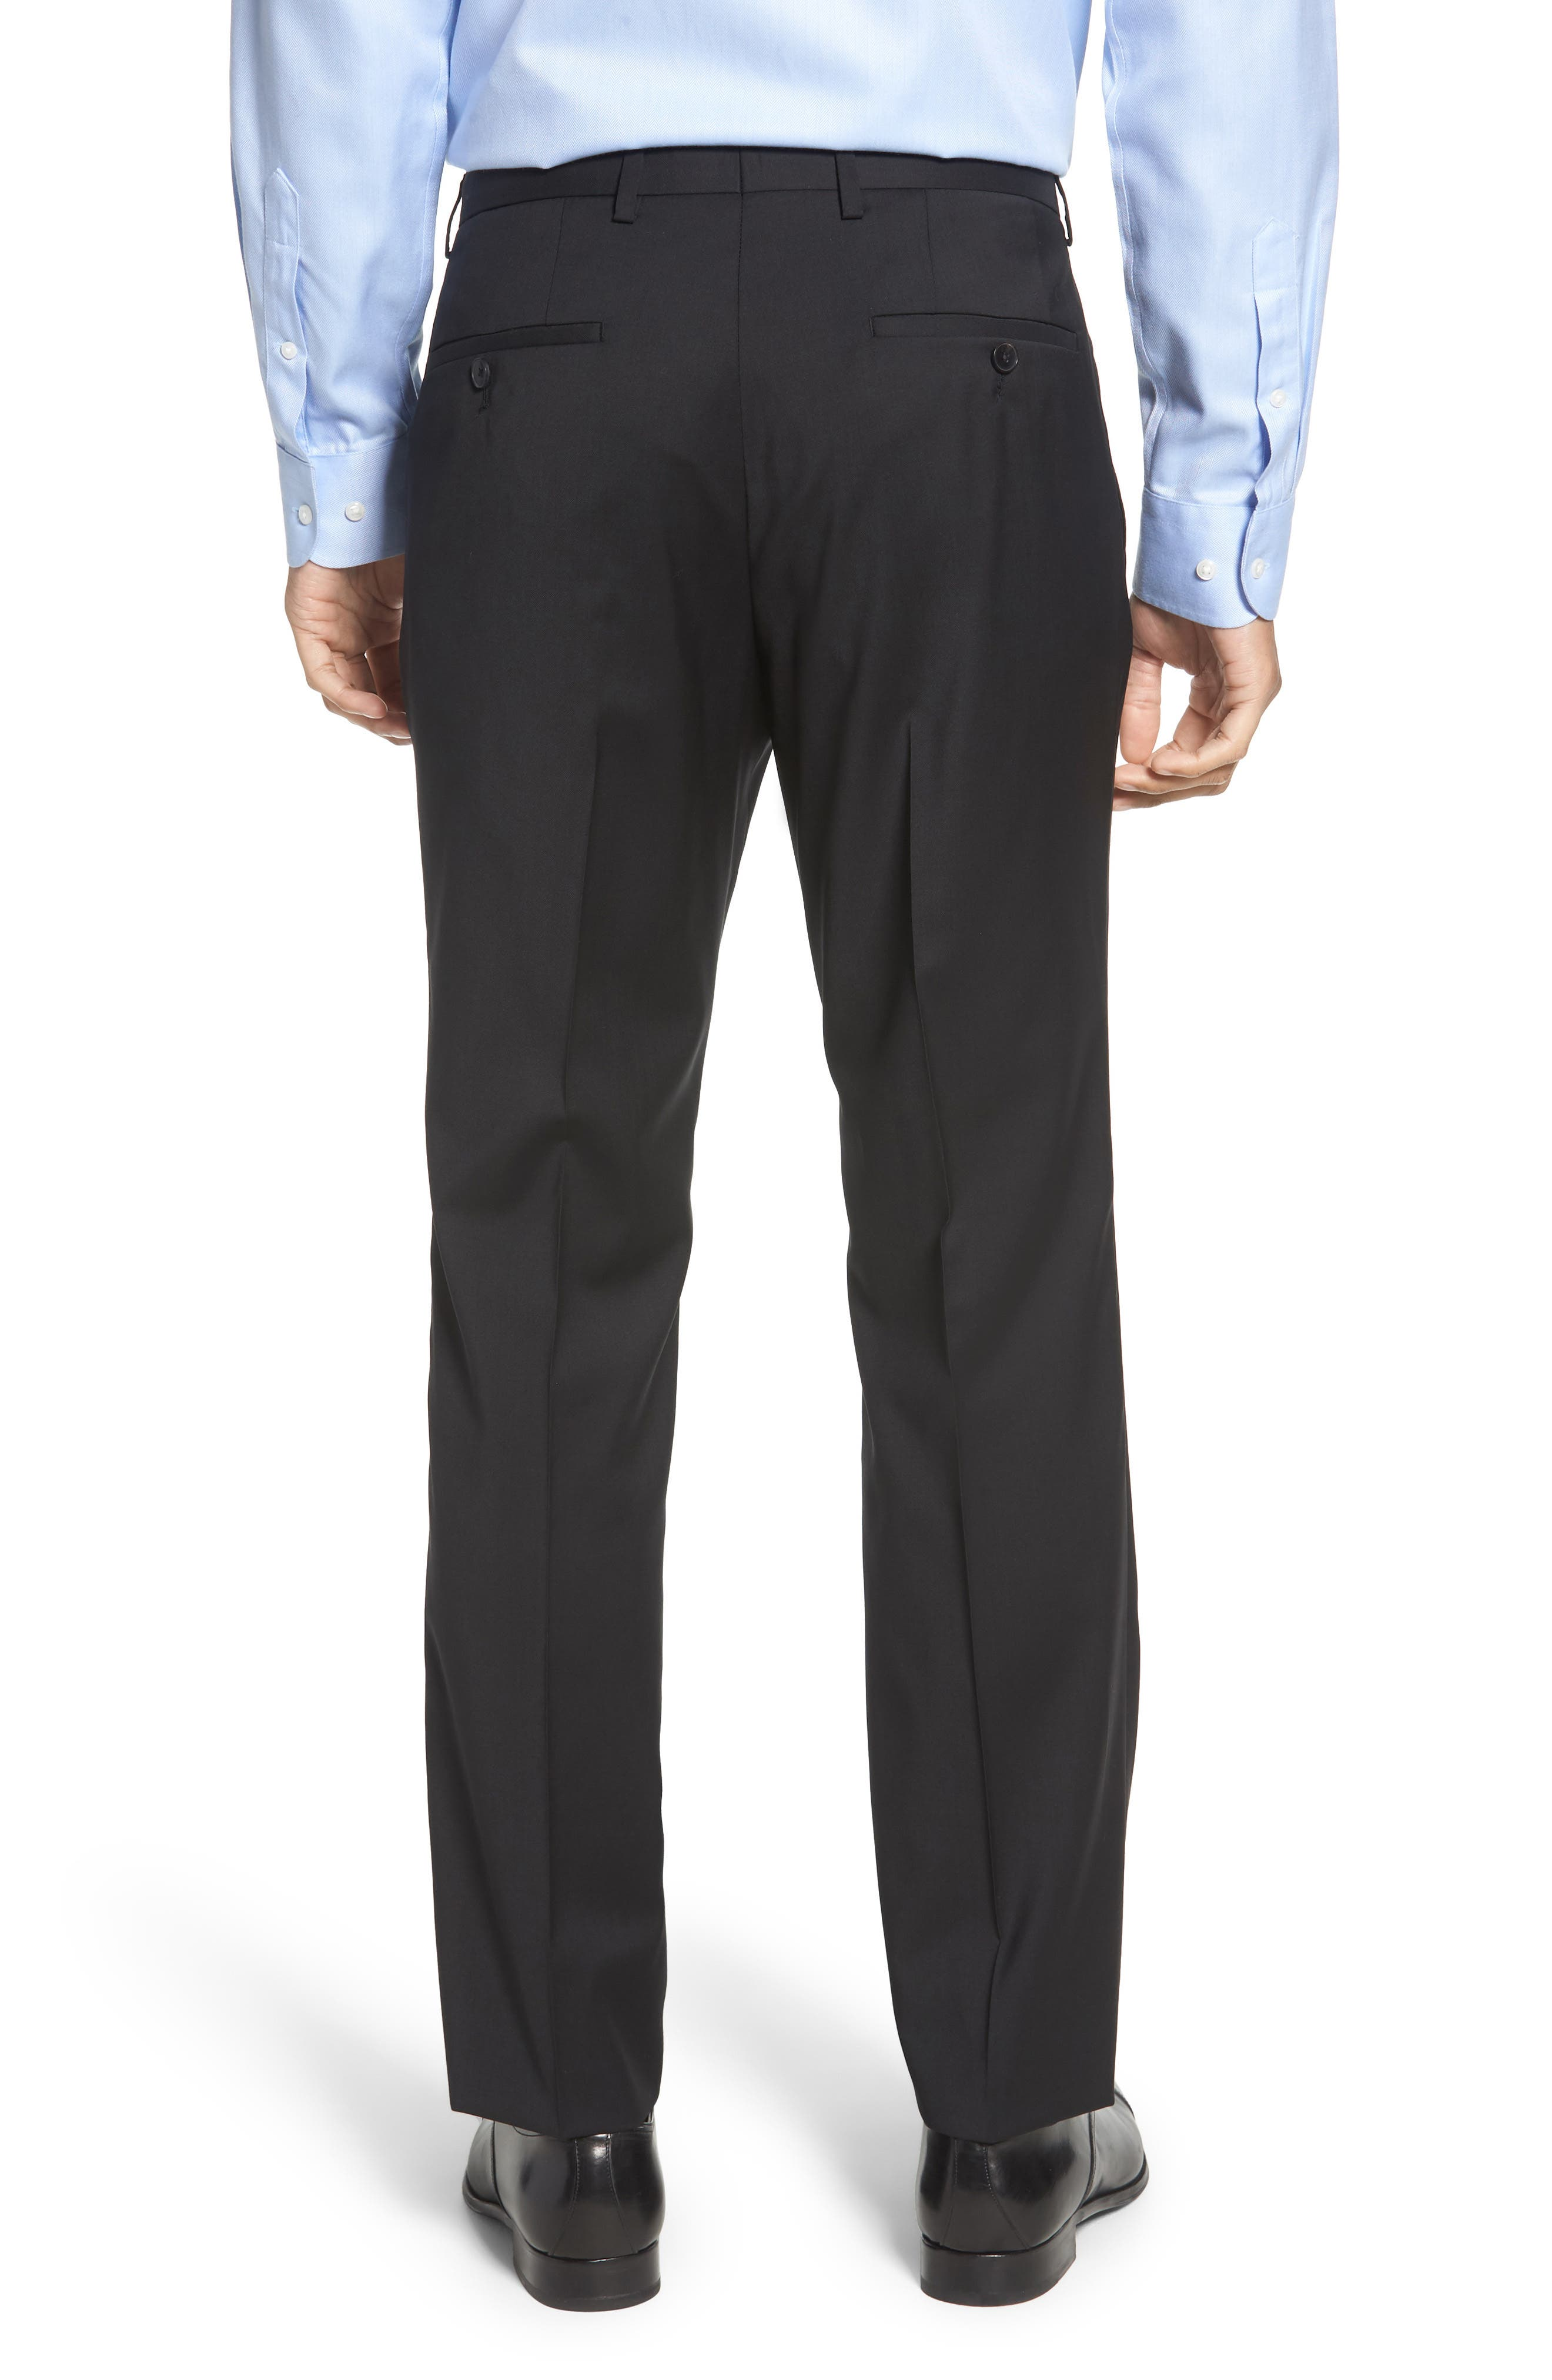 Leenon Flat Front Regular Fit Solid Wool Trousers,                             Alternate thumbnail 2, color,                             BLACK